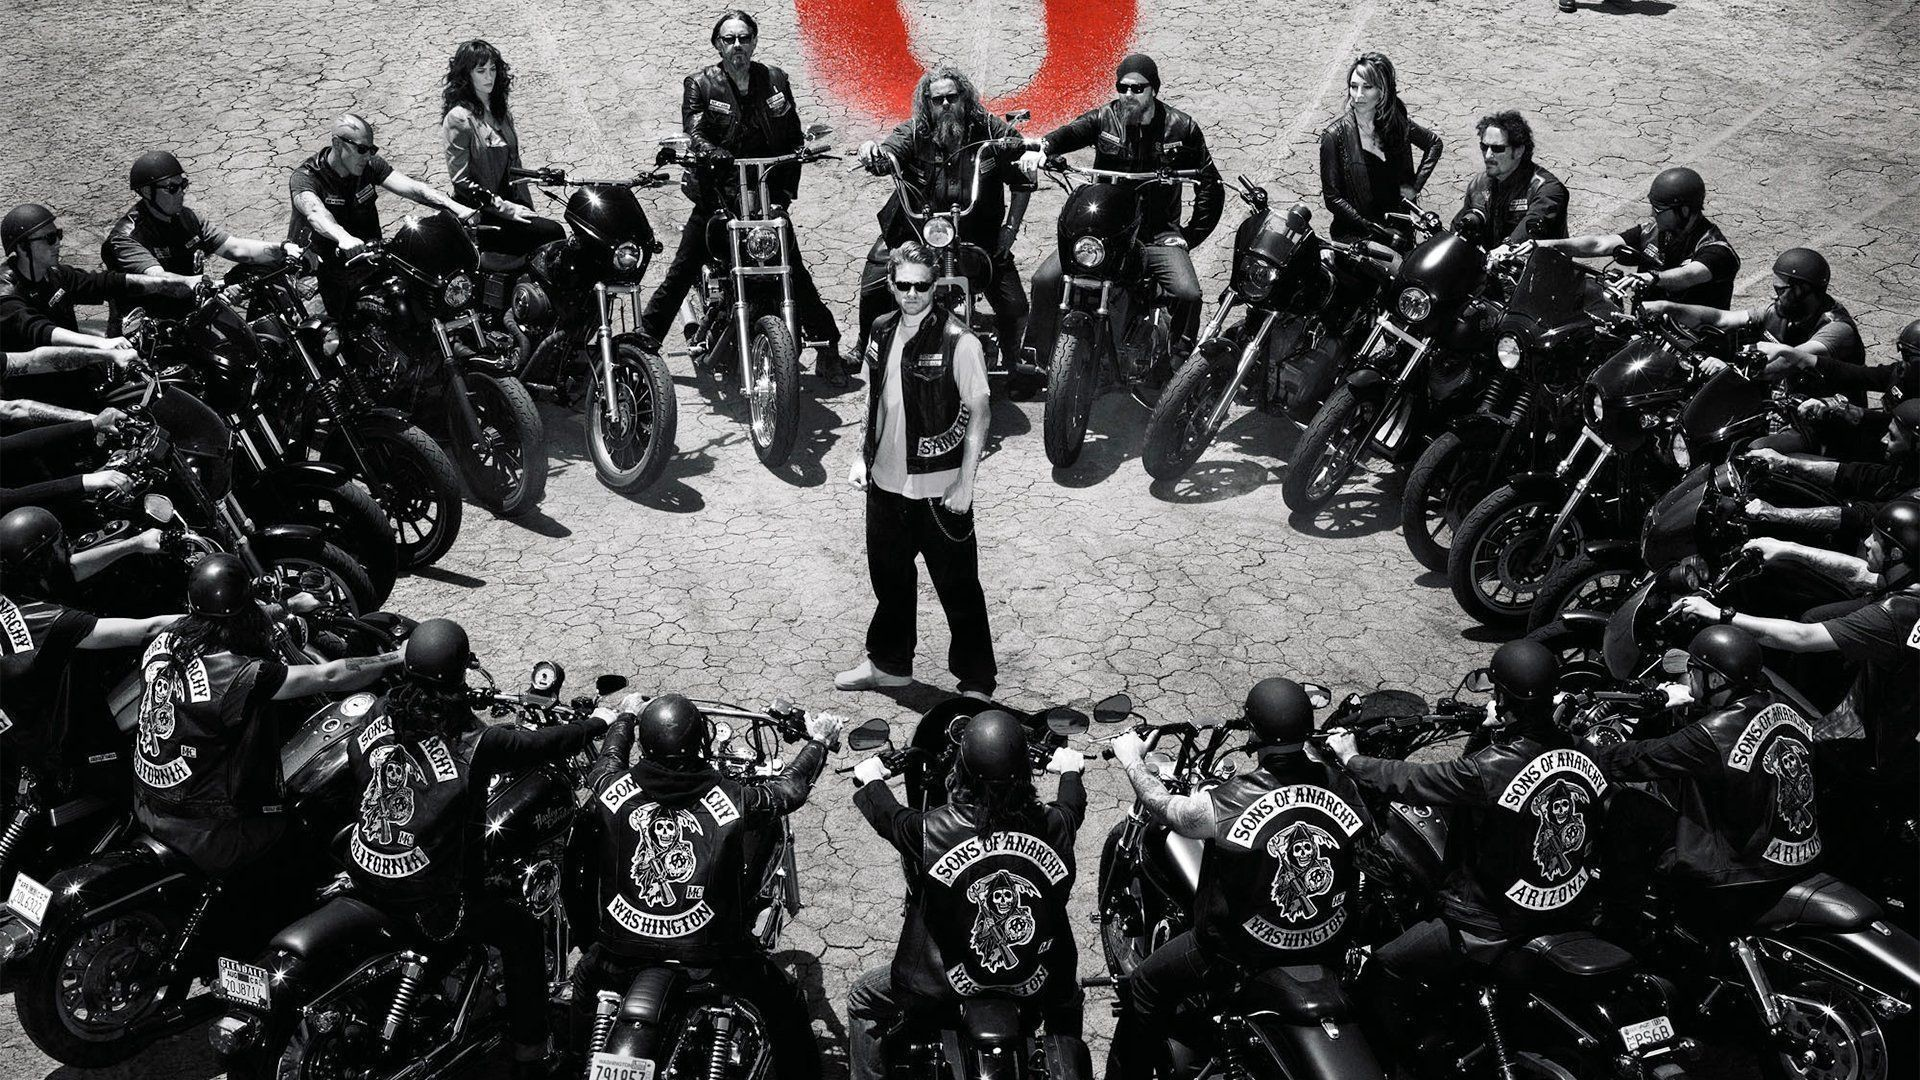 Res: 1920x1080, SONS OF ANARCHY series biker crime drama thriller wallpaper .